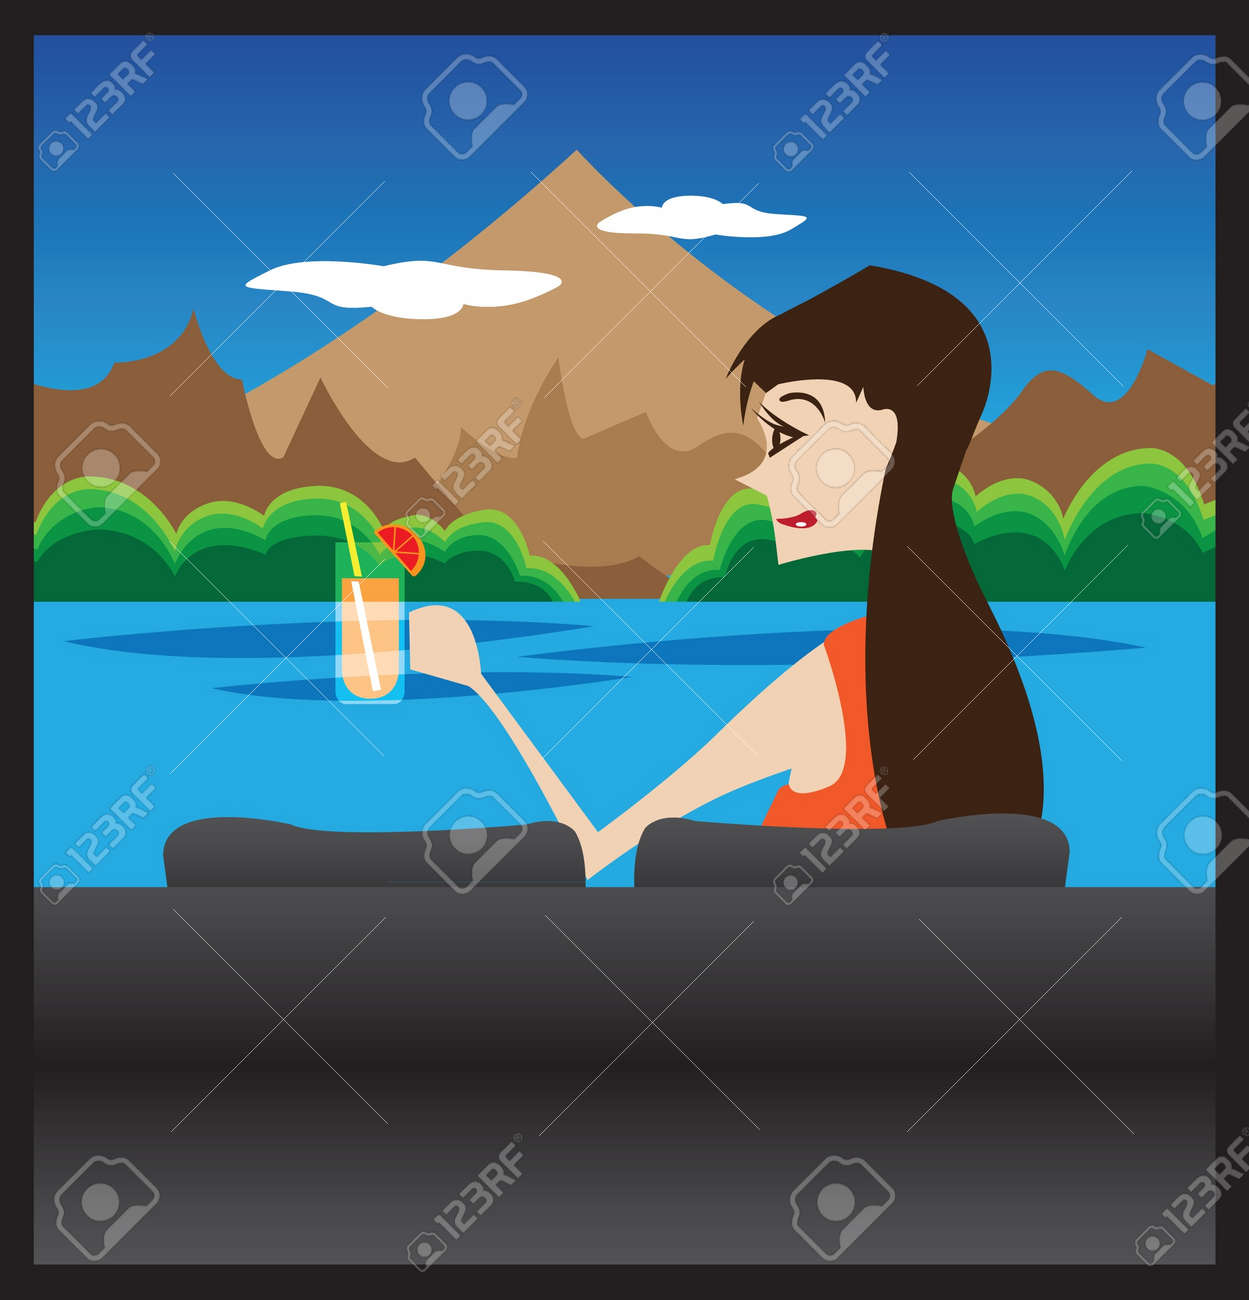 Woman enjoying her orange juice and relaxing on sofa  Enjoying the mountain view in front of her Stock Vector - 14487548